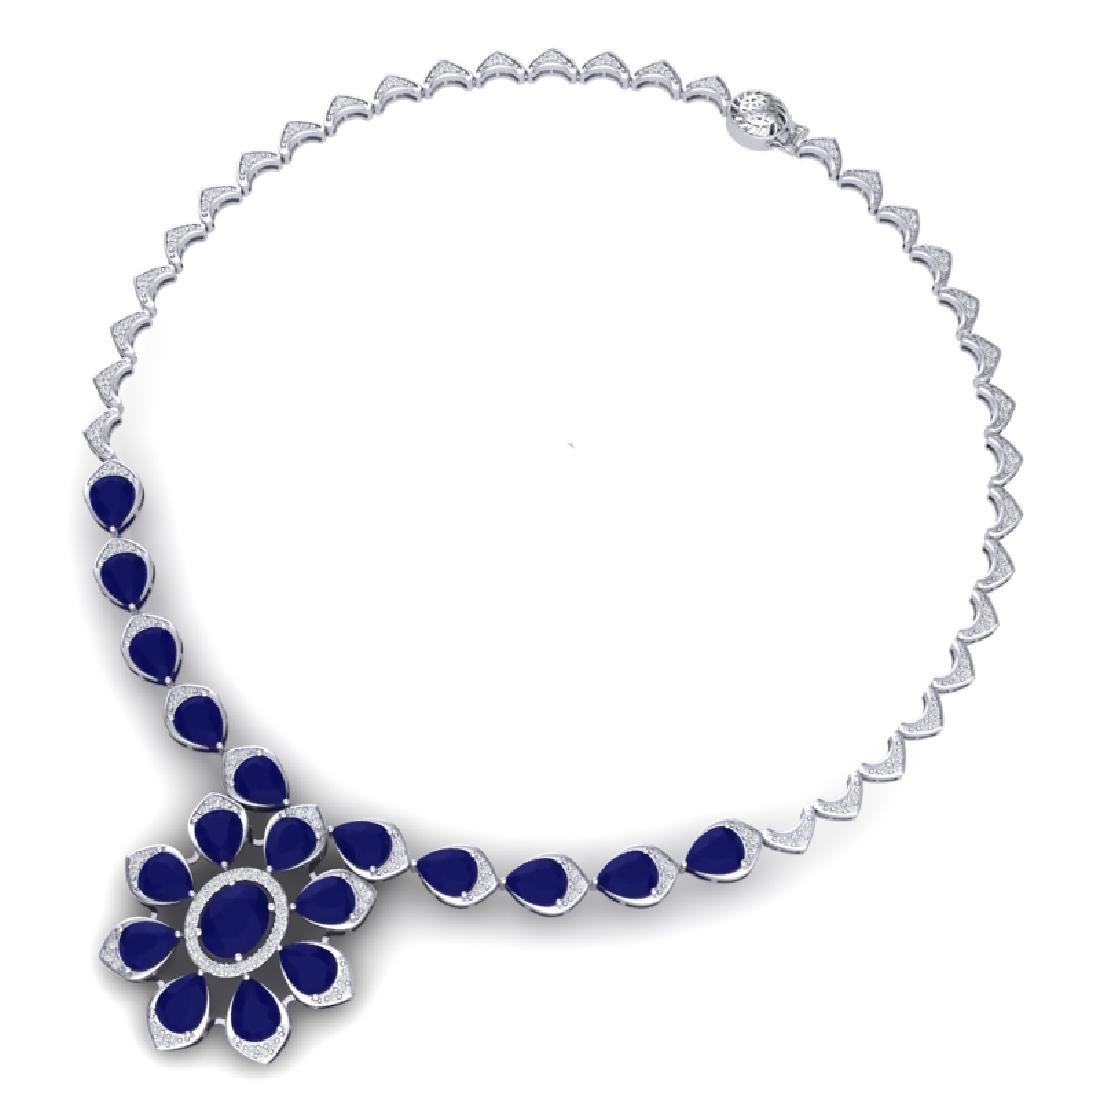 30.70 CTW Royalty Sapphire & VS Diamond Necklace 18K - 3